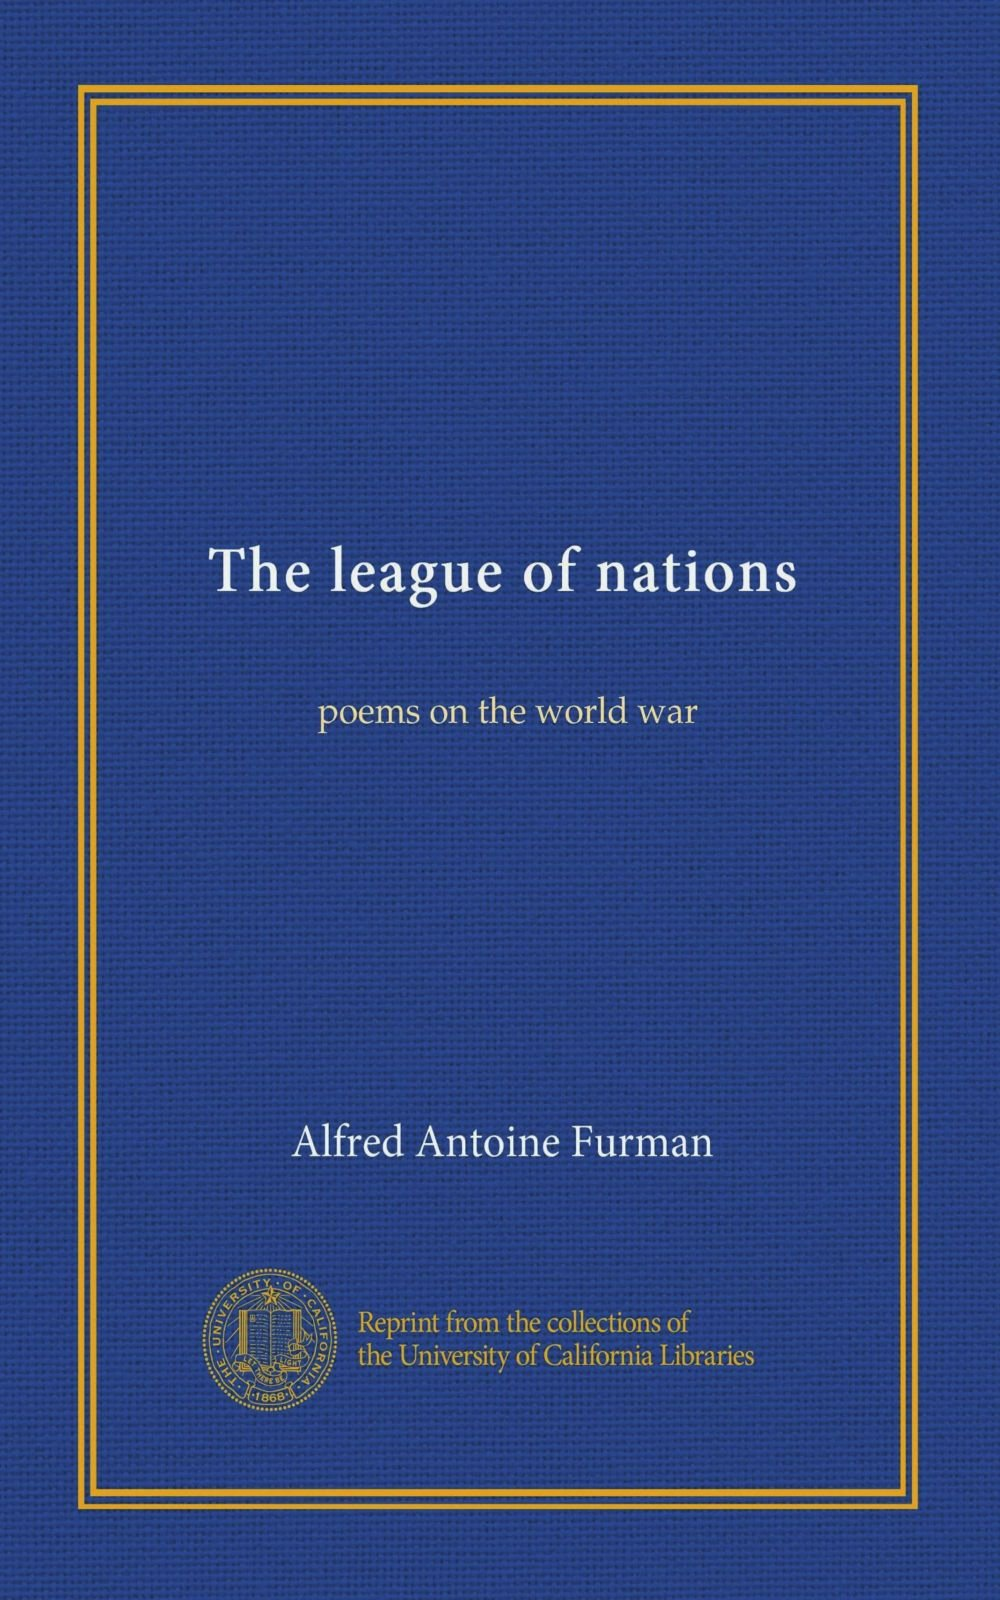 Download The league of nations: poems on the world war pdf epub